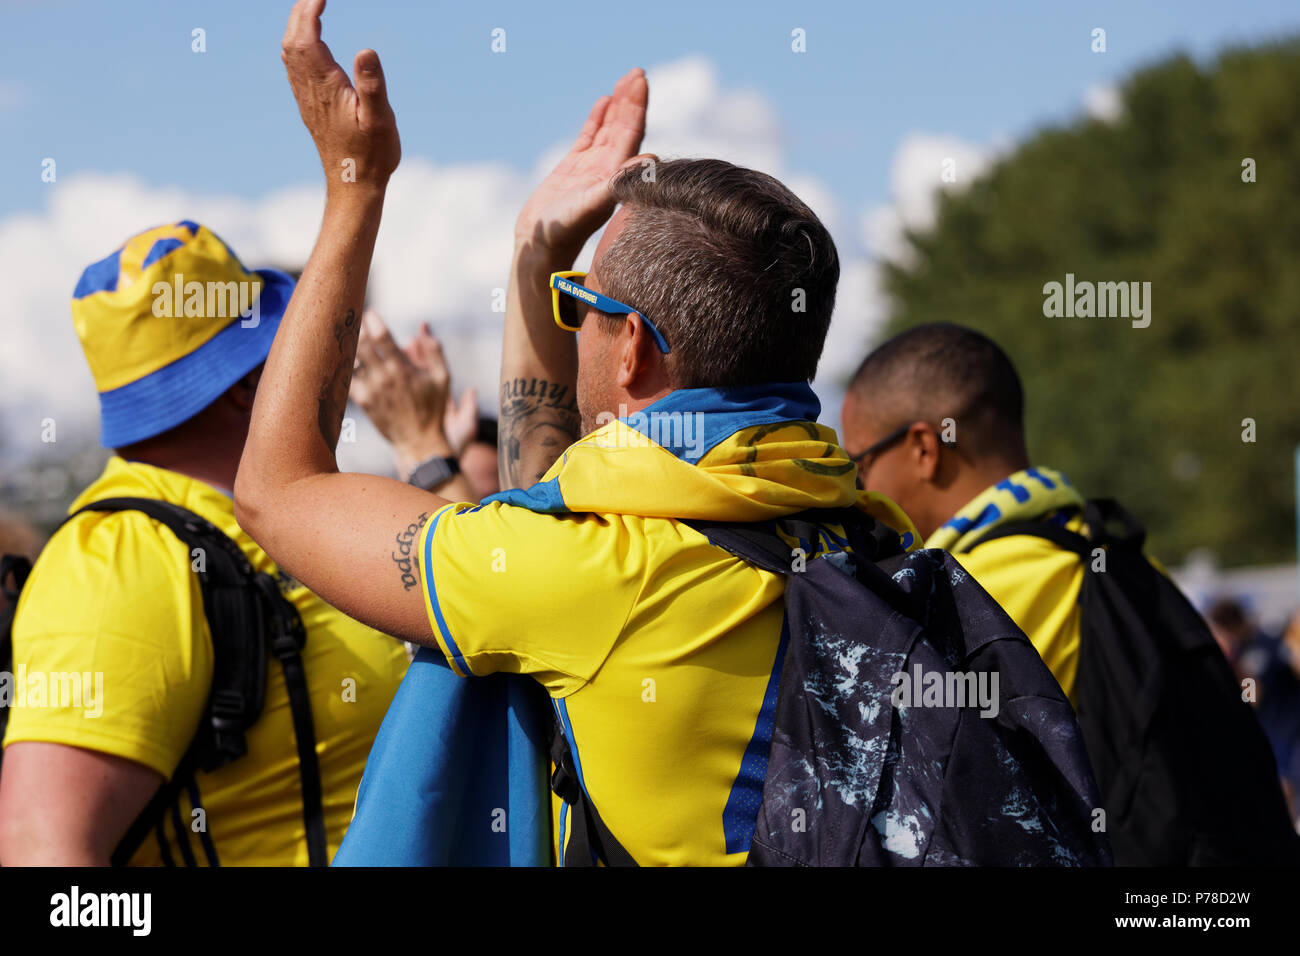 St. Petersburg, Russia - July 3, 2018: Swedish football fans singing at Saint Petersburg stadium before the match of FIFA World Cup 2018 Sweden vs Swi - Stock Image